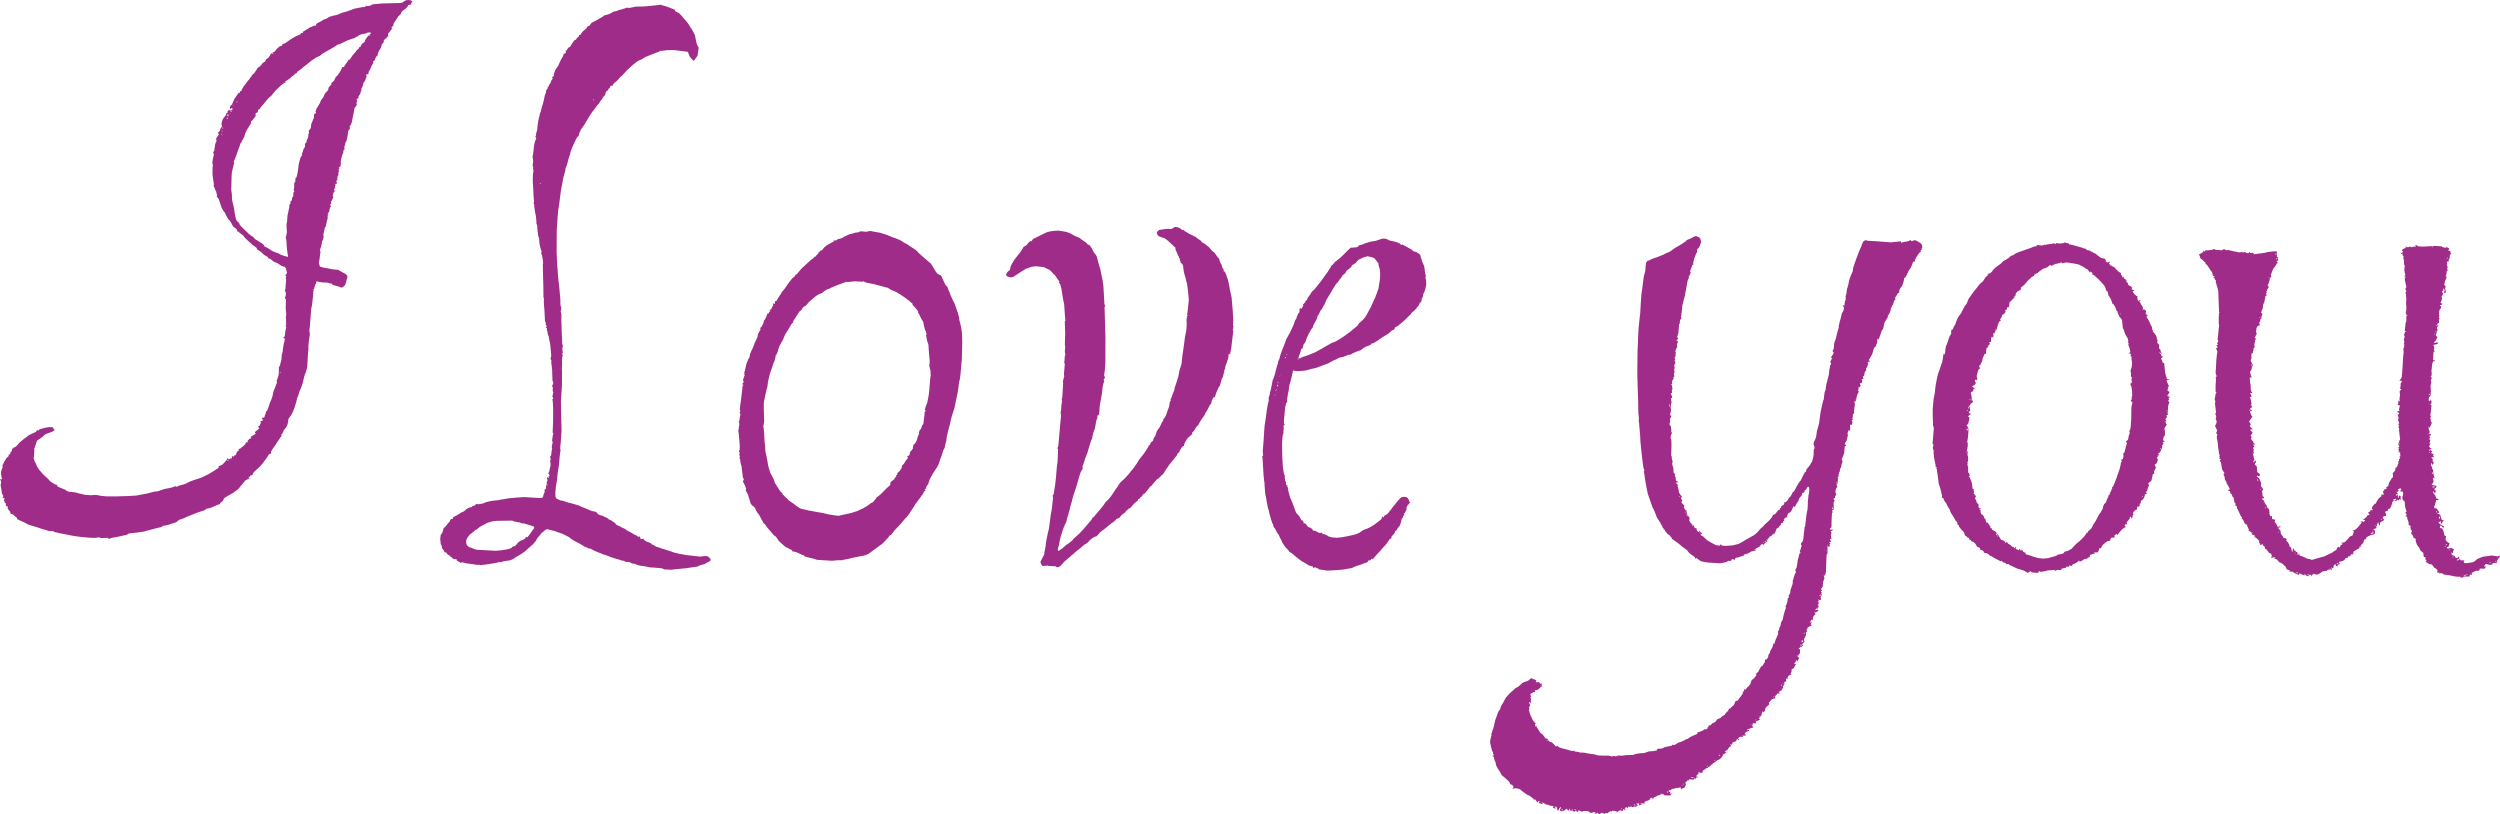 love you texts png transparent onlygfxm #25726